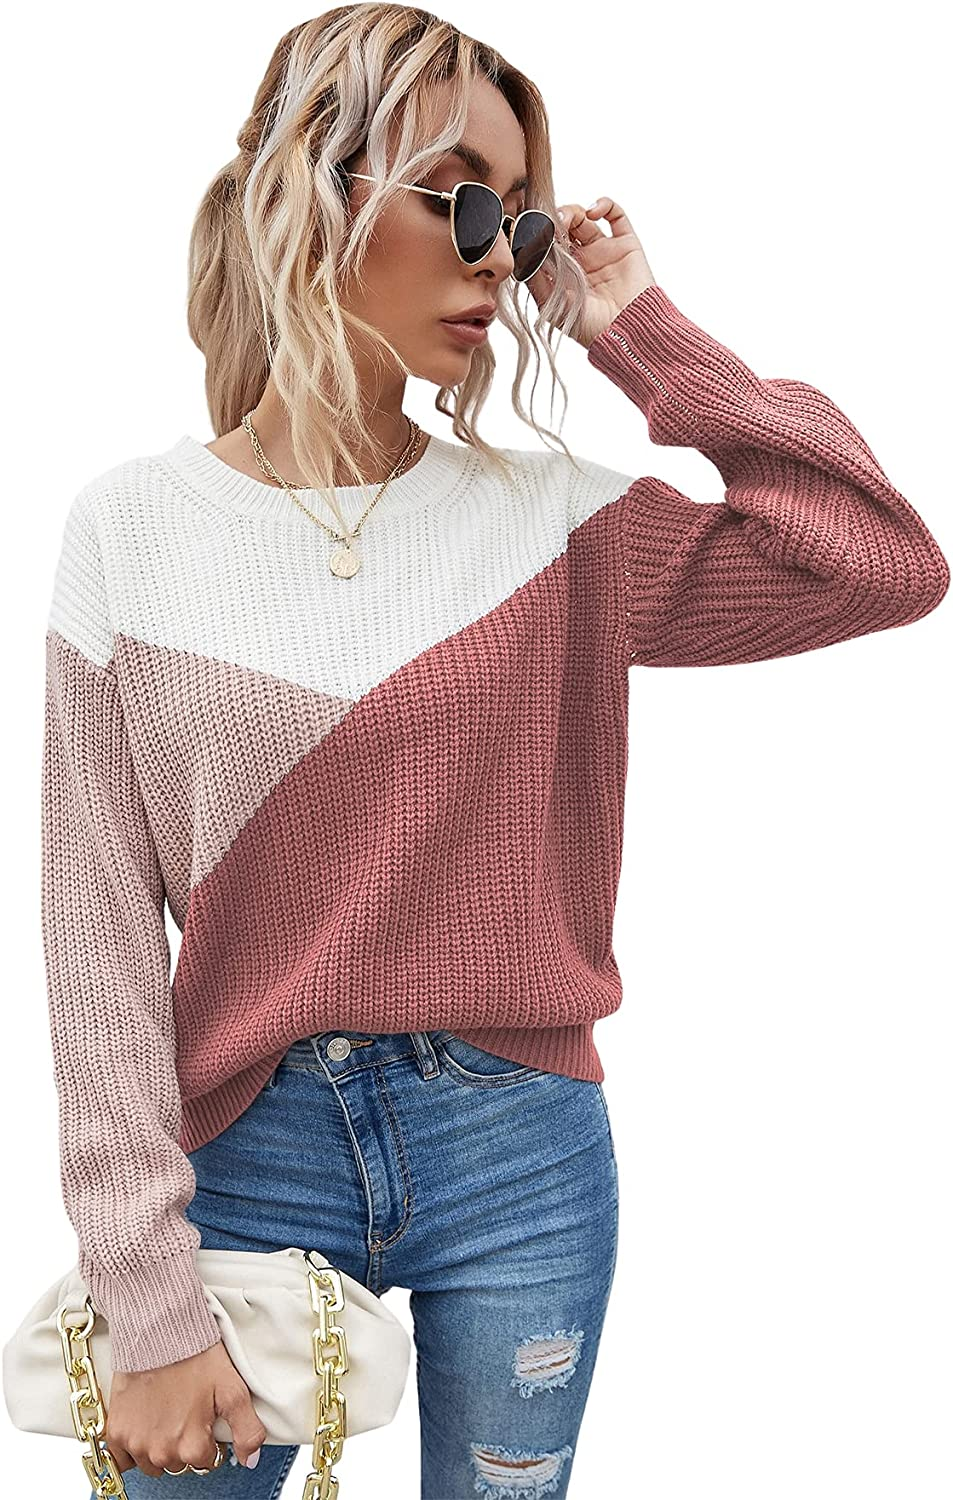 MakeMeChic Women's Color Block Long Sleeve Crew Neck Knit Sweater Casual Pullover